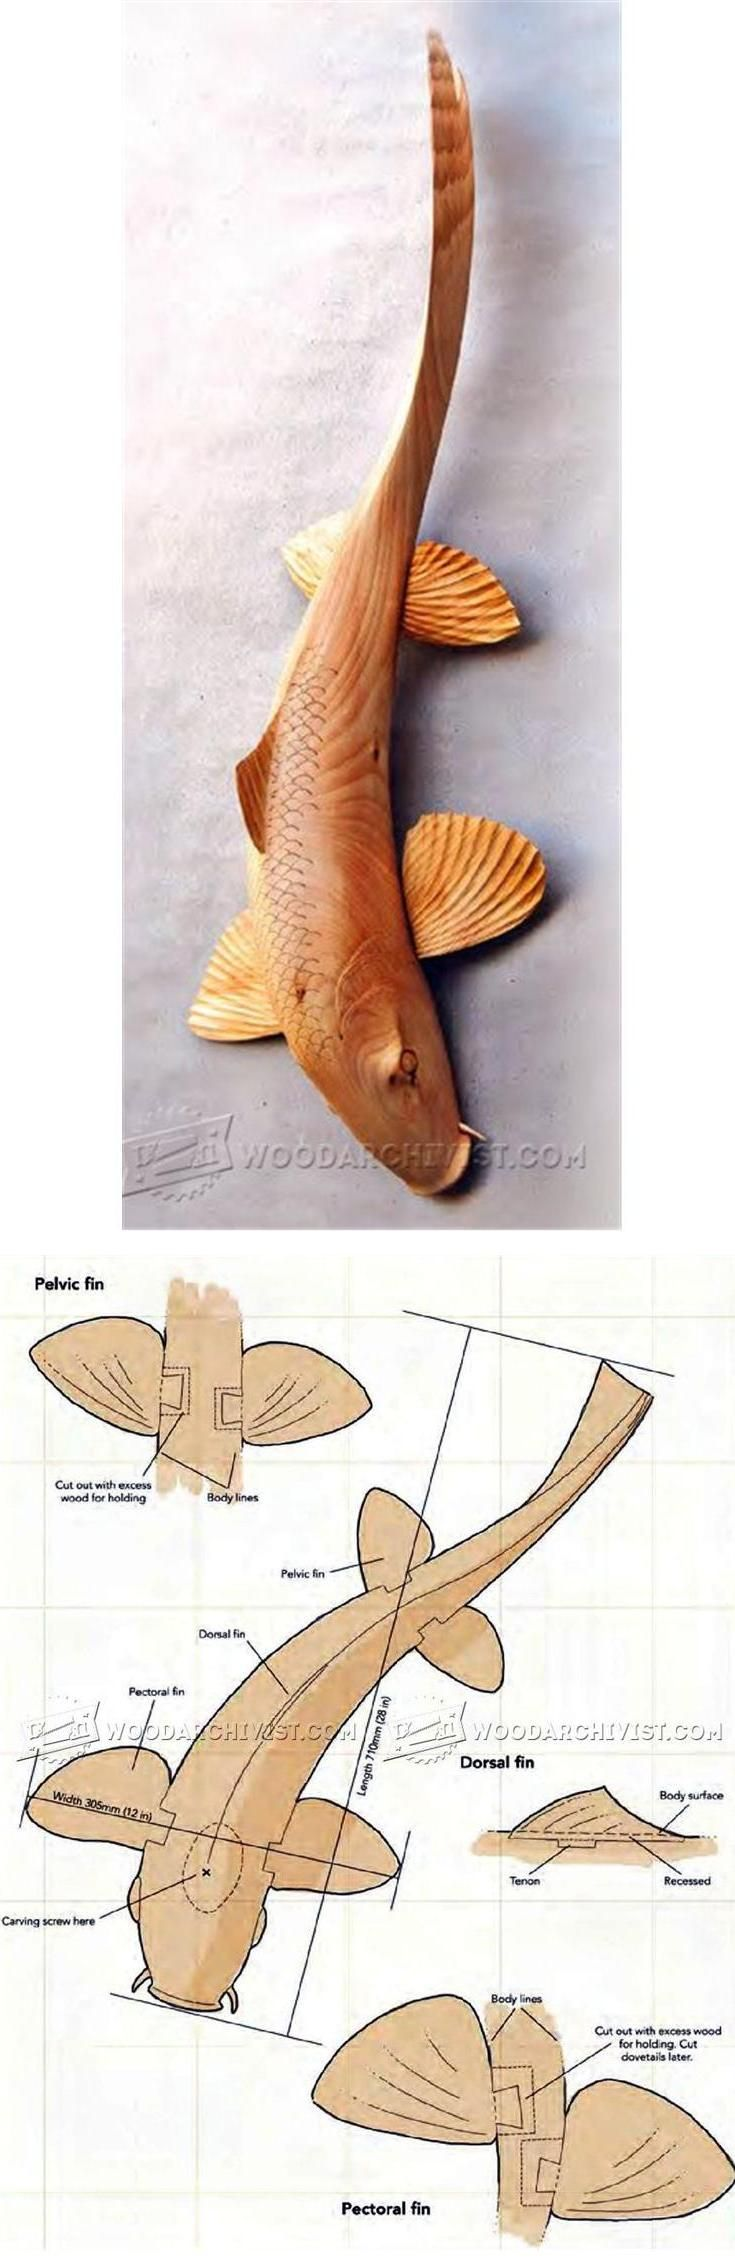 Carving koi carp wood patterns and techniques